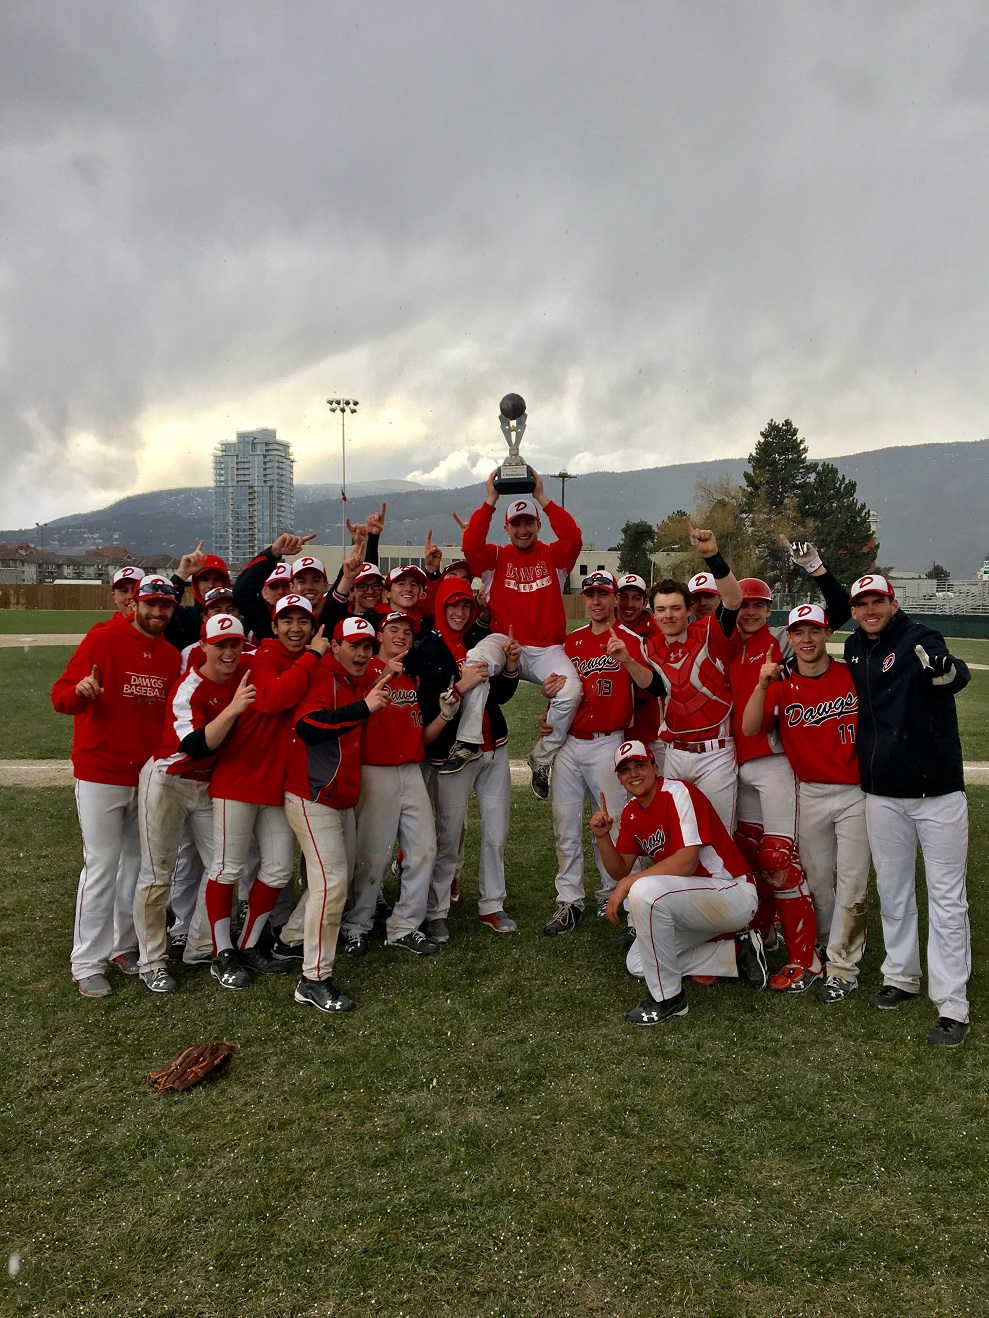 The Calgary Dawgs Red 18U celebrate after winning the Kelowna Invitational. That's spark plug Adam Little players are hoisting.